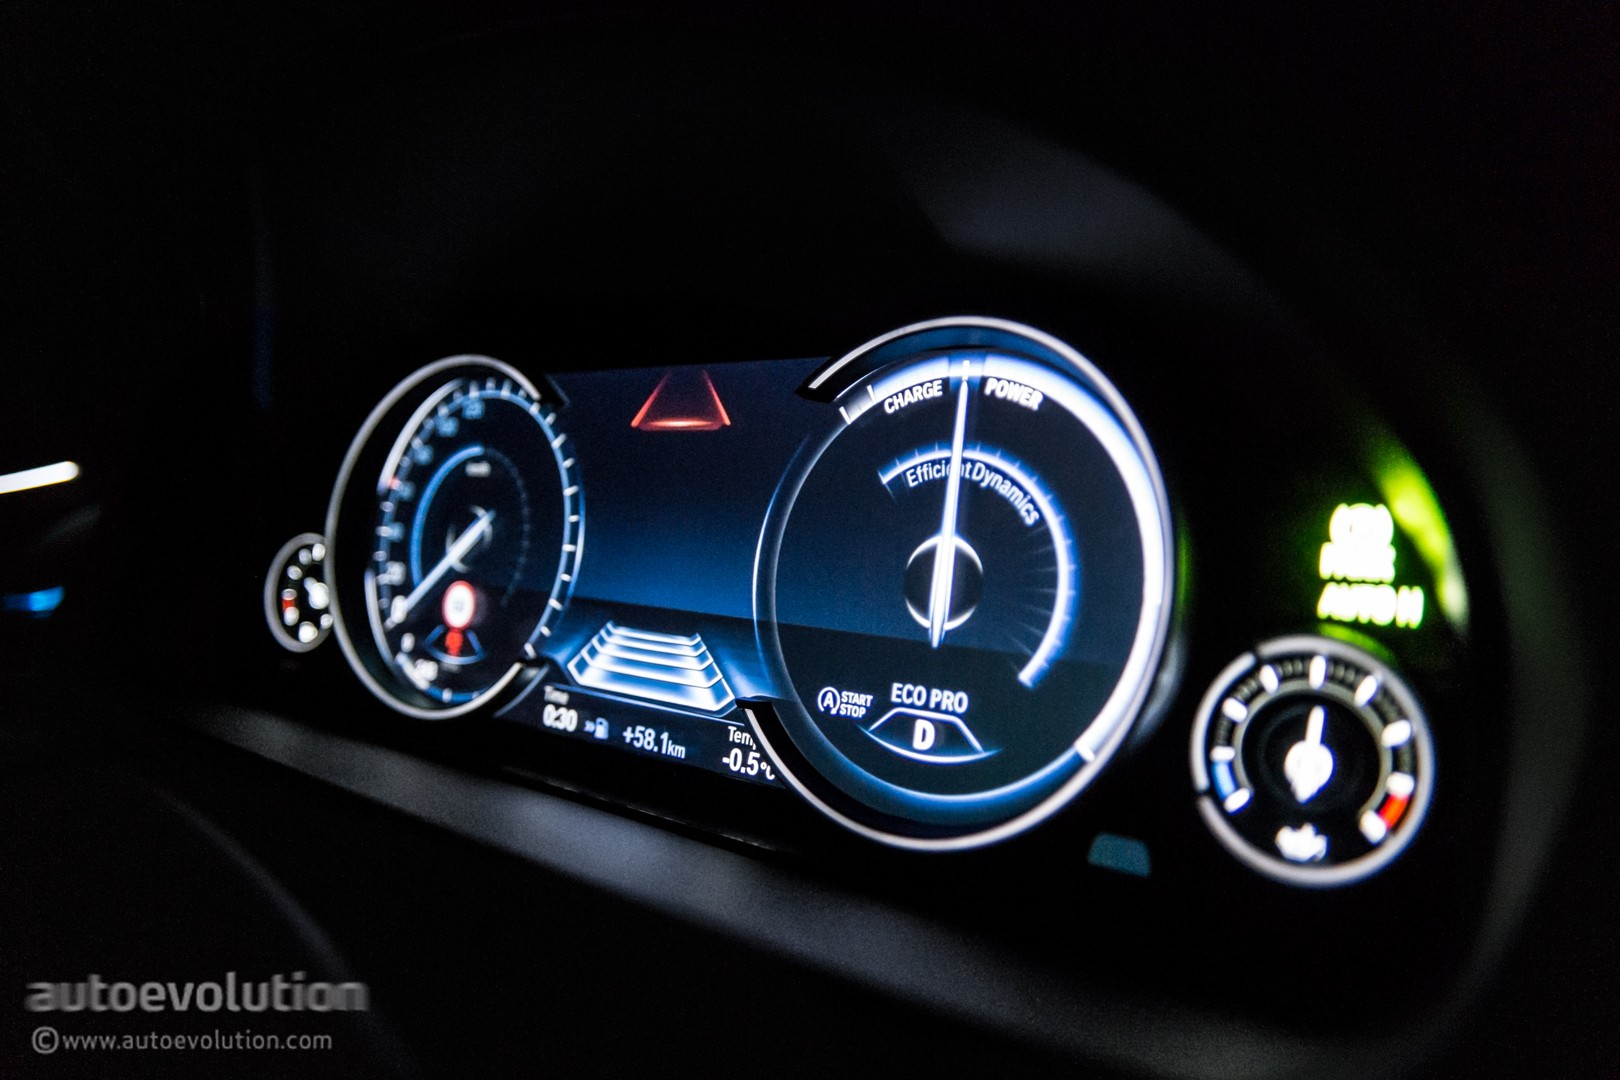 Coolest Car In The World Wallpaper Bmw S 2015 Technologies Reviewed From Night Vision To Led